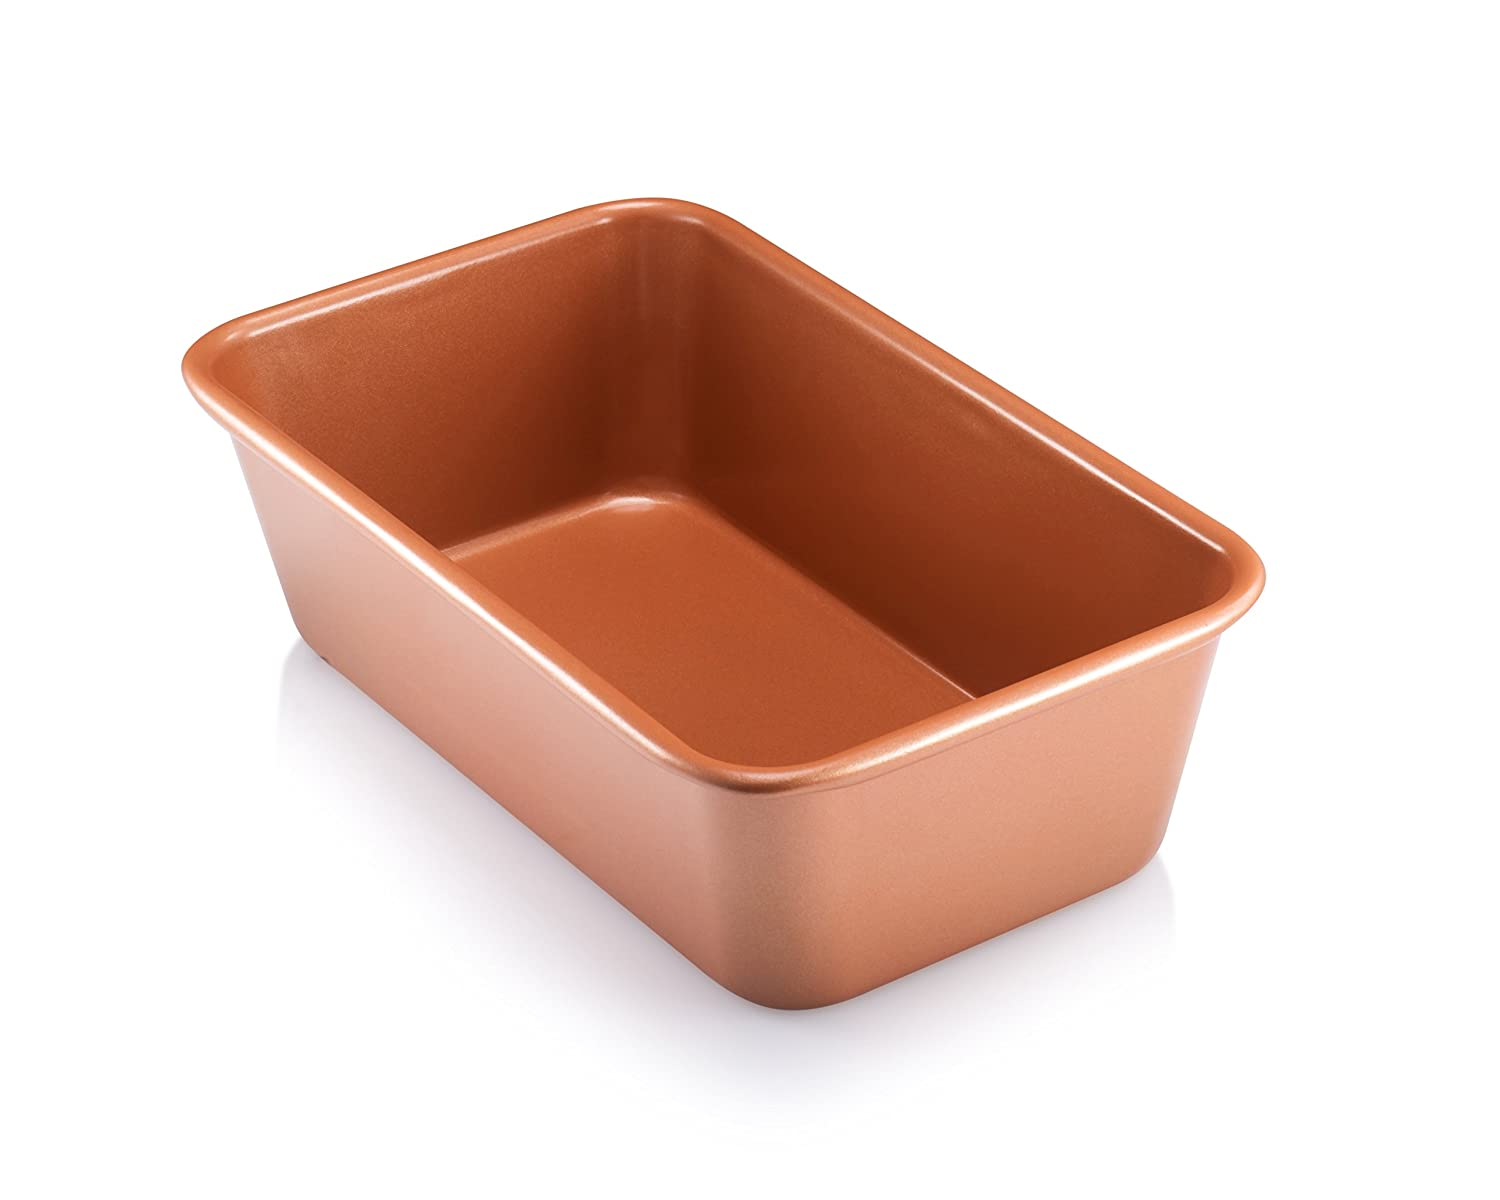 Gotham Steel Bakeware - Loaf Pan, 9 x 4 inch, with Nonstick Copper & Quick Release Coating 1362